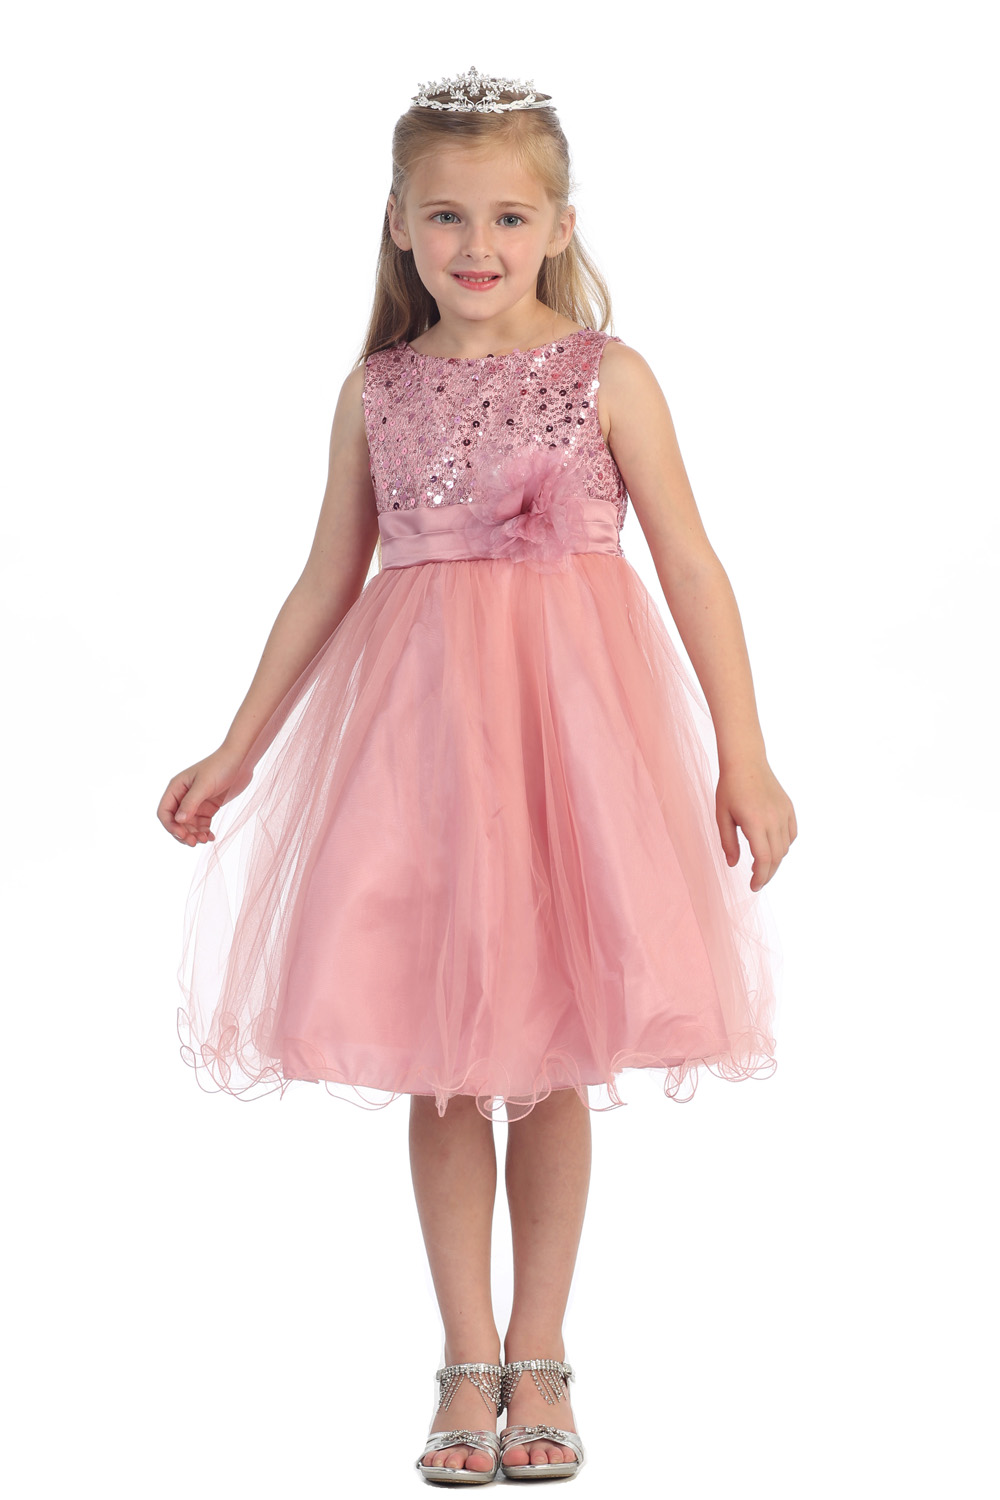 Flower Girls Dresses For Wedding Gowns Sequin Girl Birthday Party Dress Knee-Length Kids Prom Dresses Mother Daughter Dresses new white ivory nice spaghetti straps sequined knee length a line flower girl dress beautiful square collar birthday party gowns